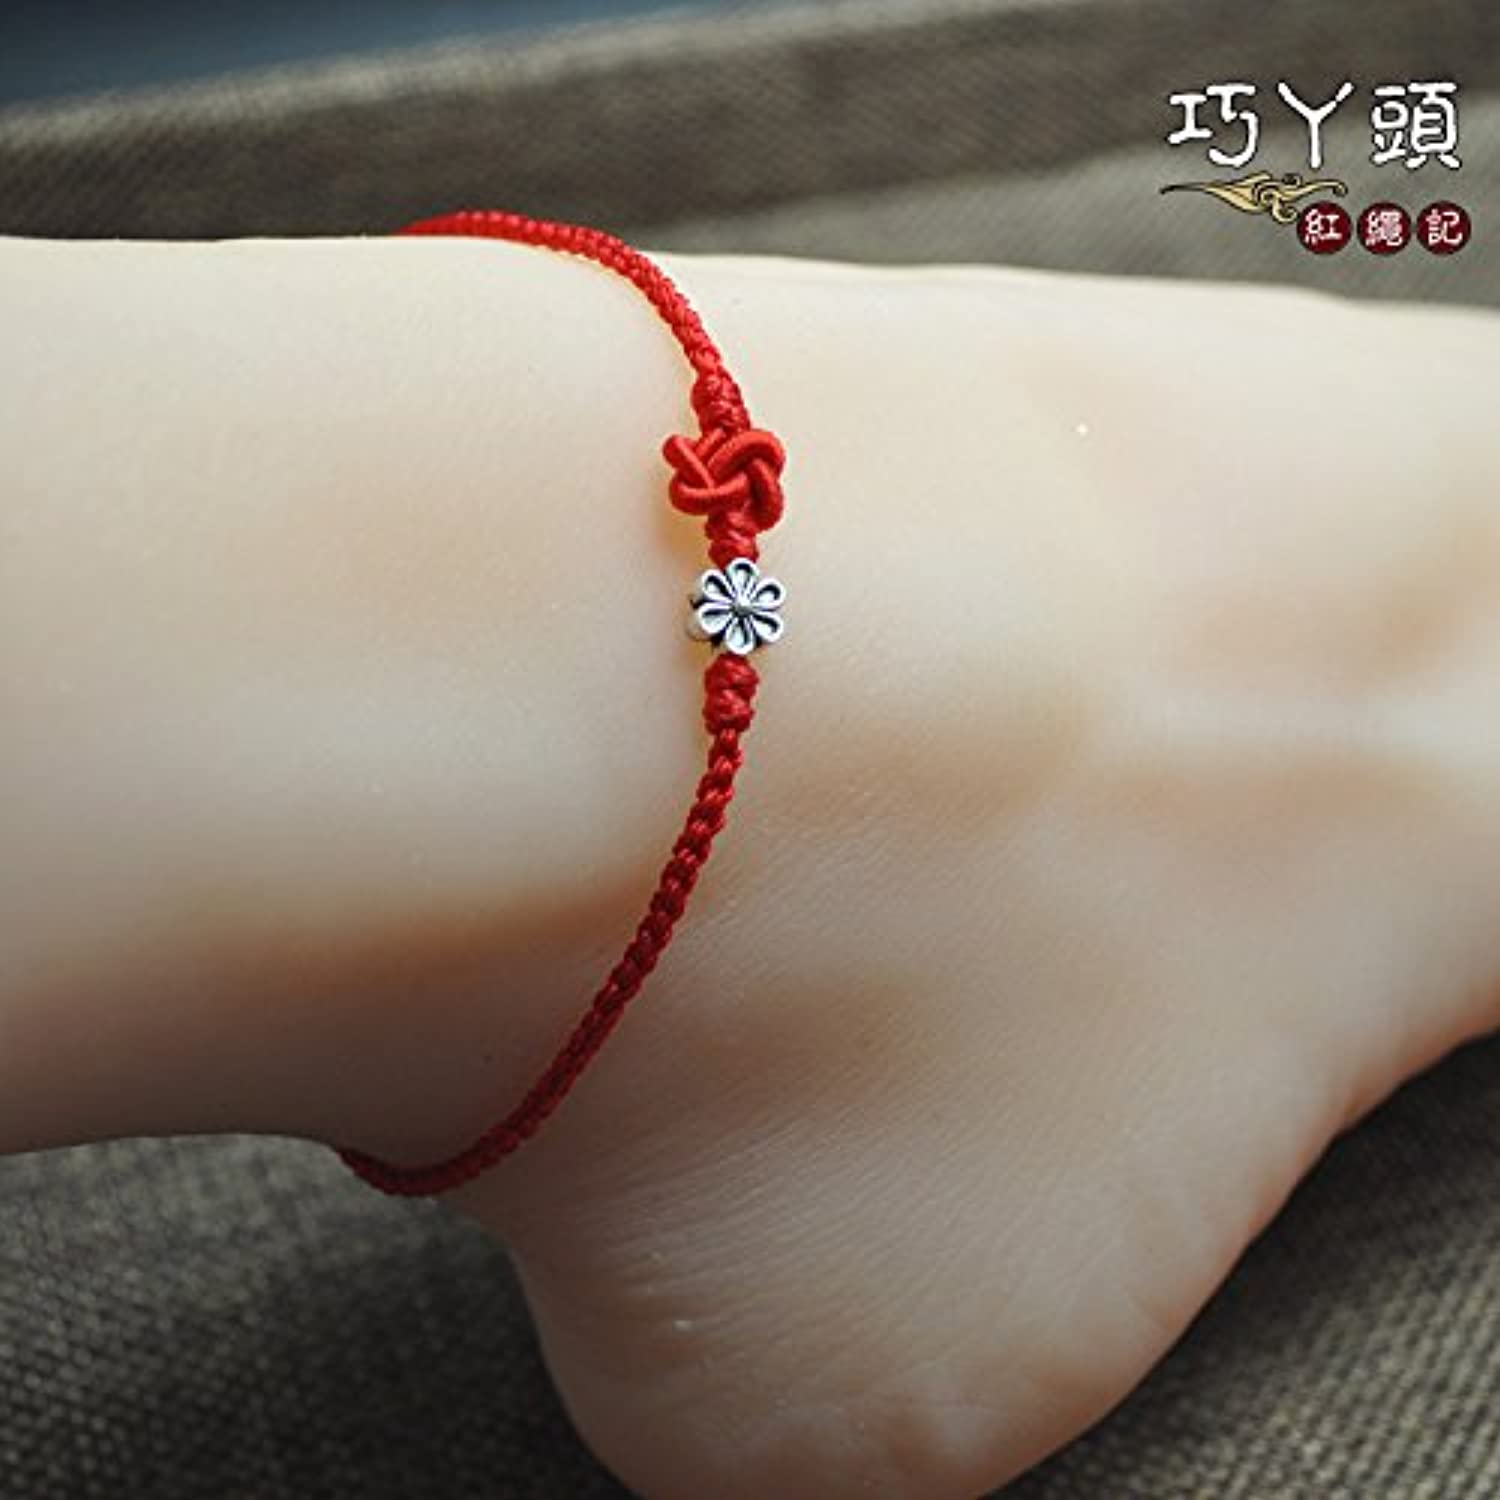 Hand Preparation Benming red String Transporter fine Silver Flowers Foot Rope Knot Foot Chain Anklet Jewelry Gift Girlfriends